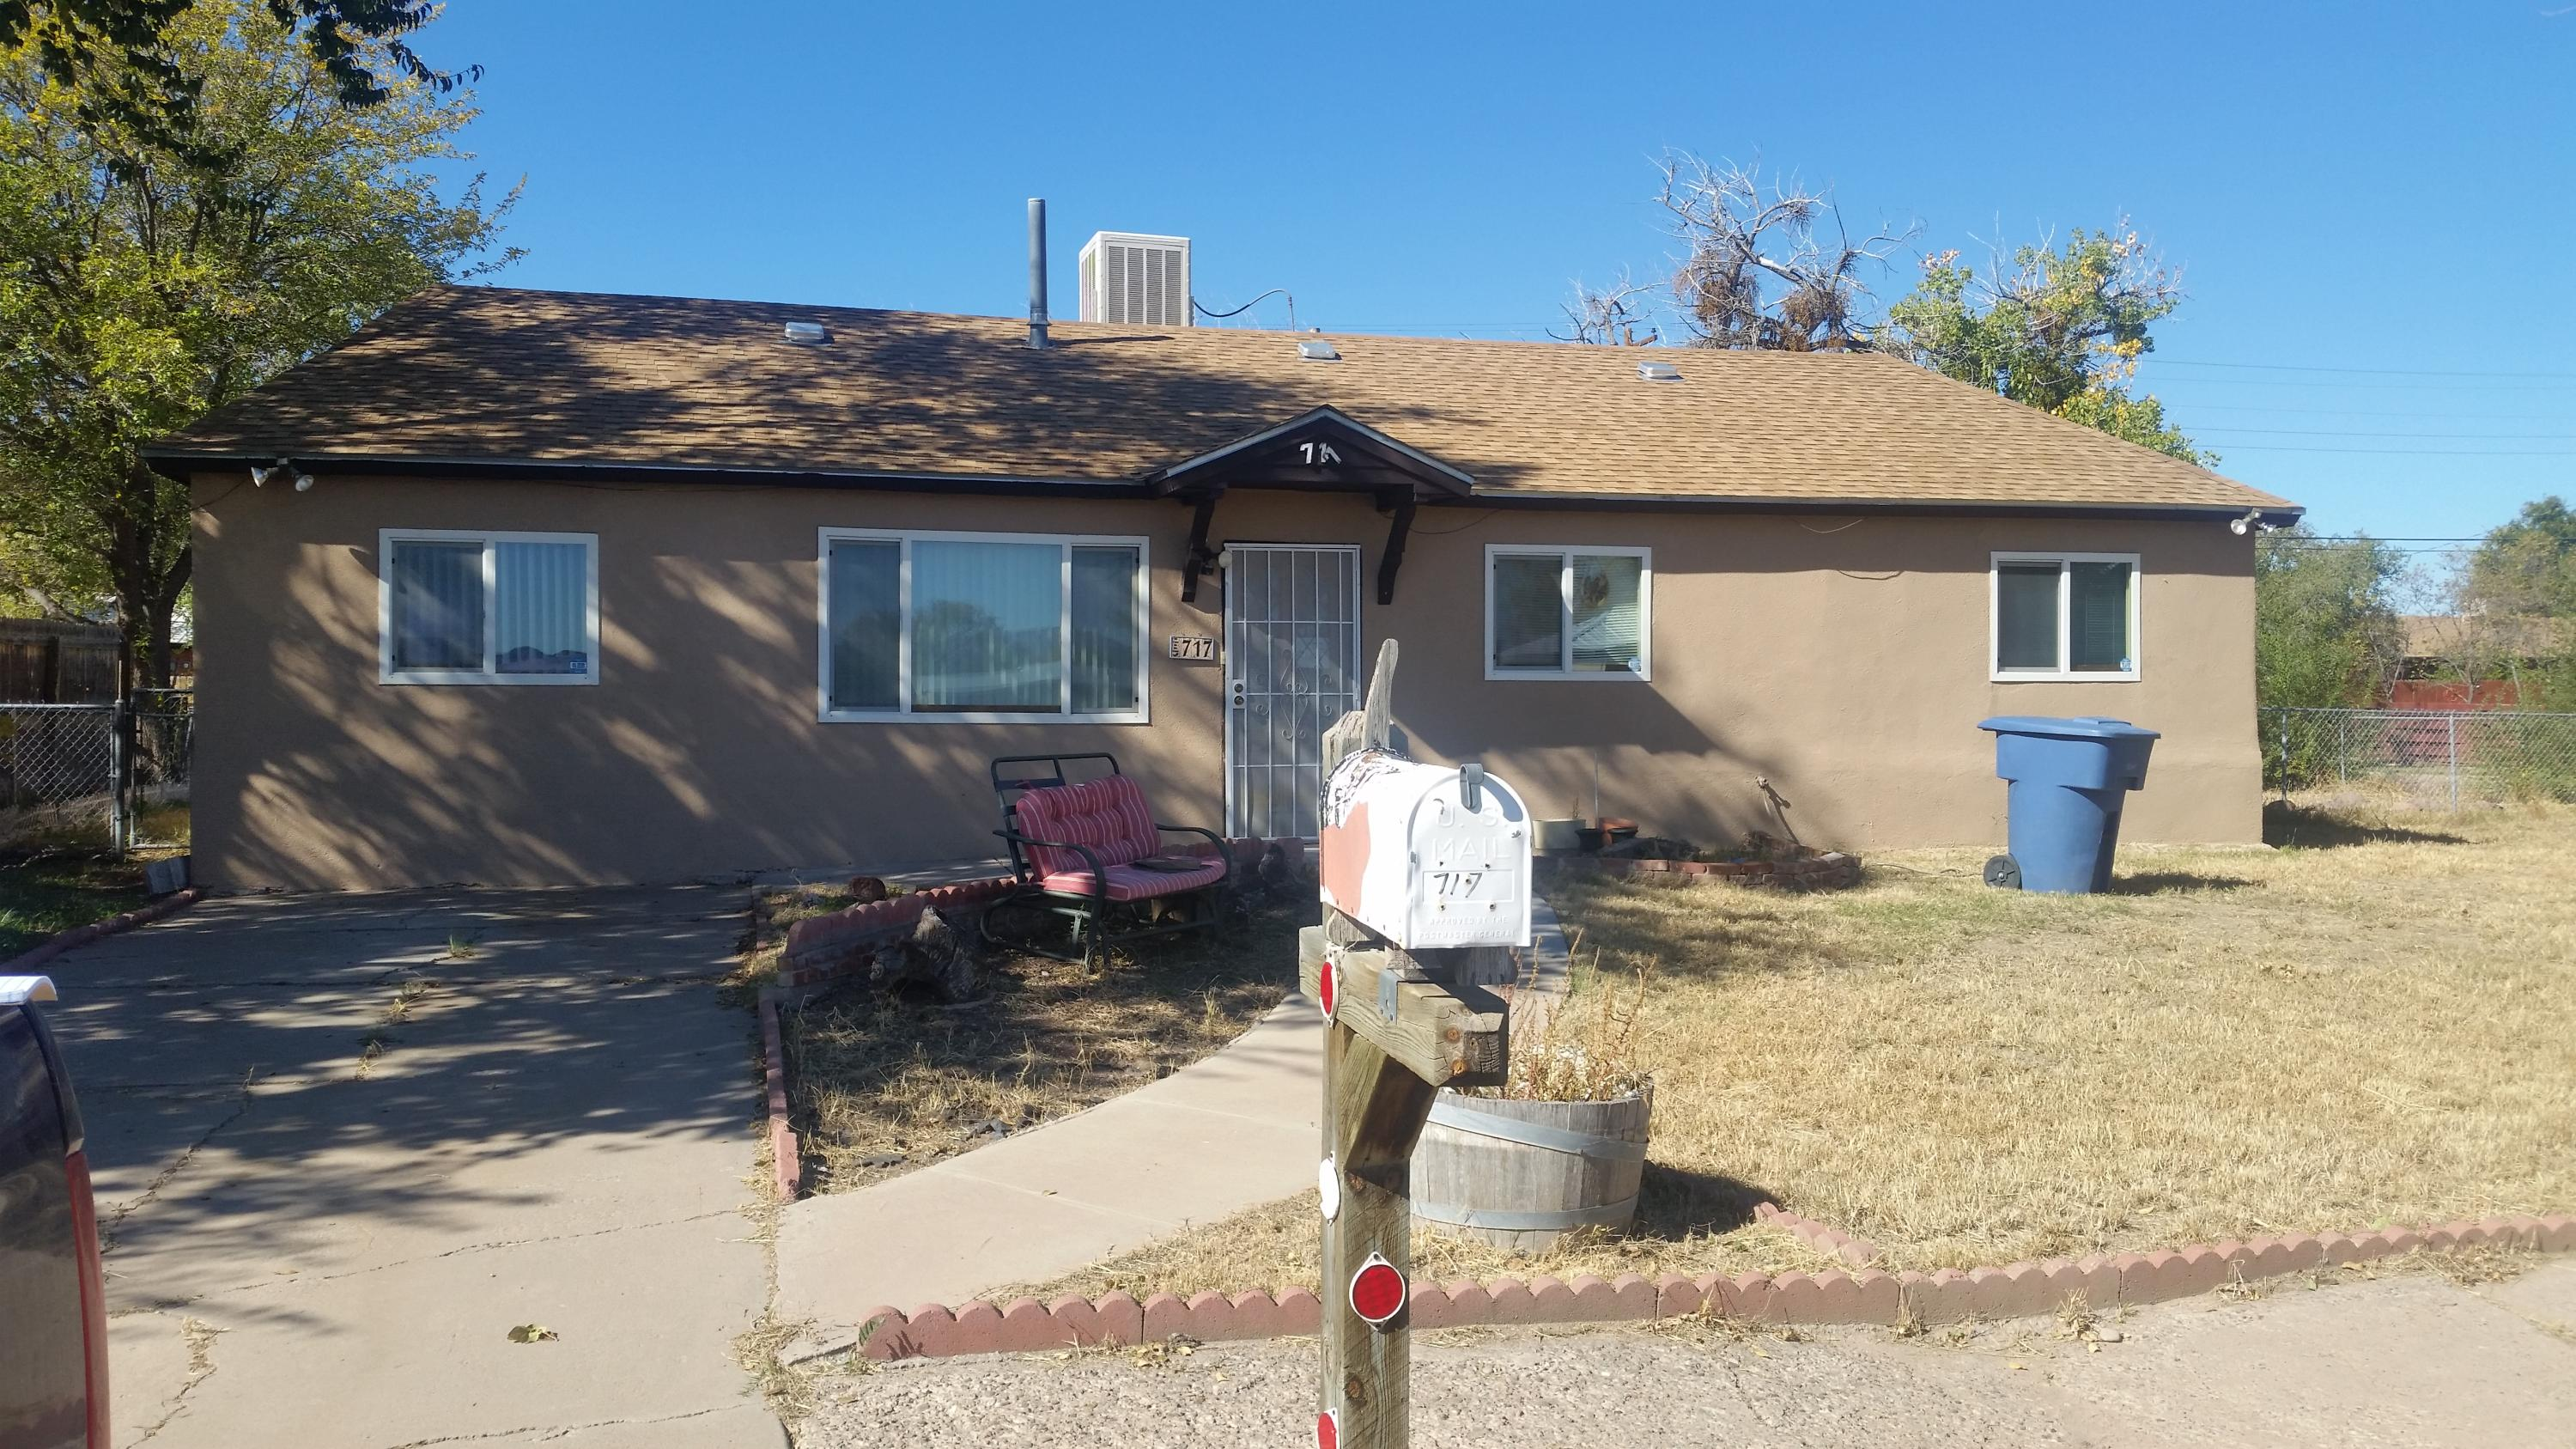 717 Franklin Street, Socorro, NM 87801 - Socorro, NM real estate listing